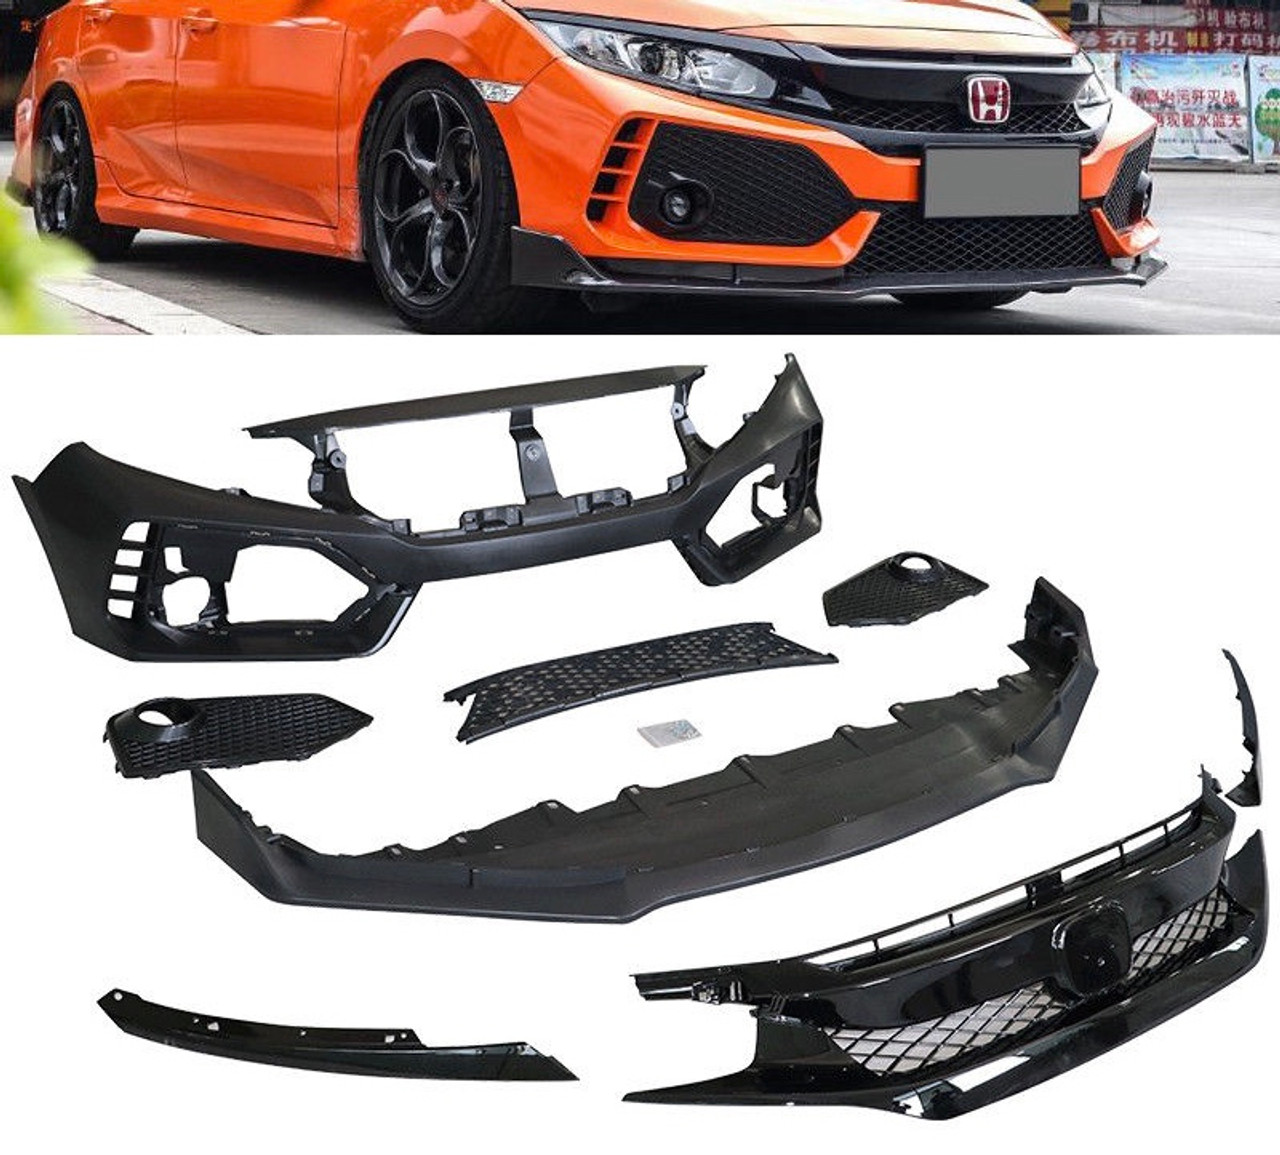 16 18 honda civic type r style front bumper with grill so cal16 18 honda civic type r style front bumper with grill